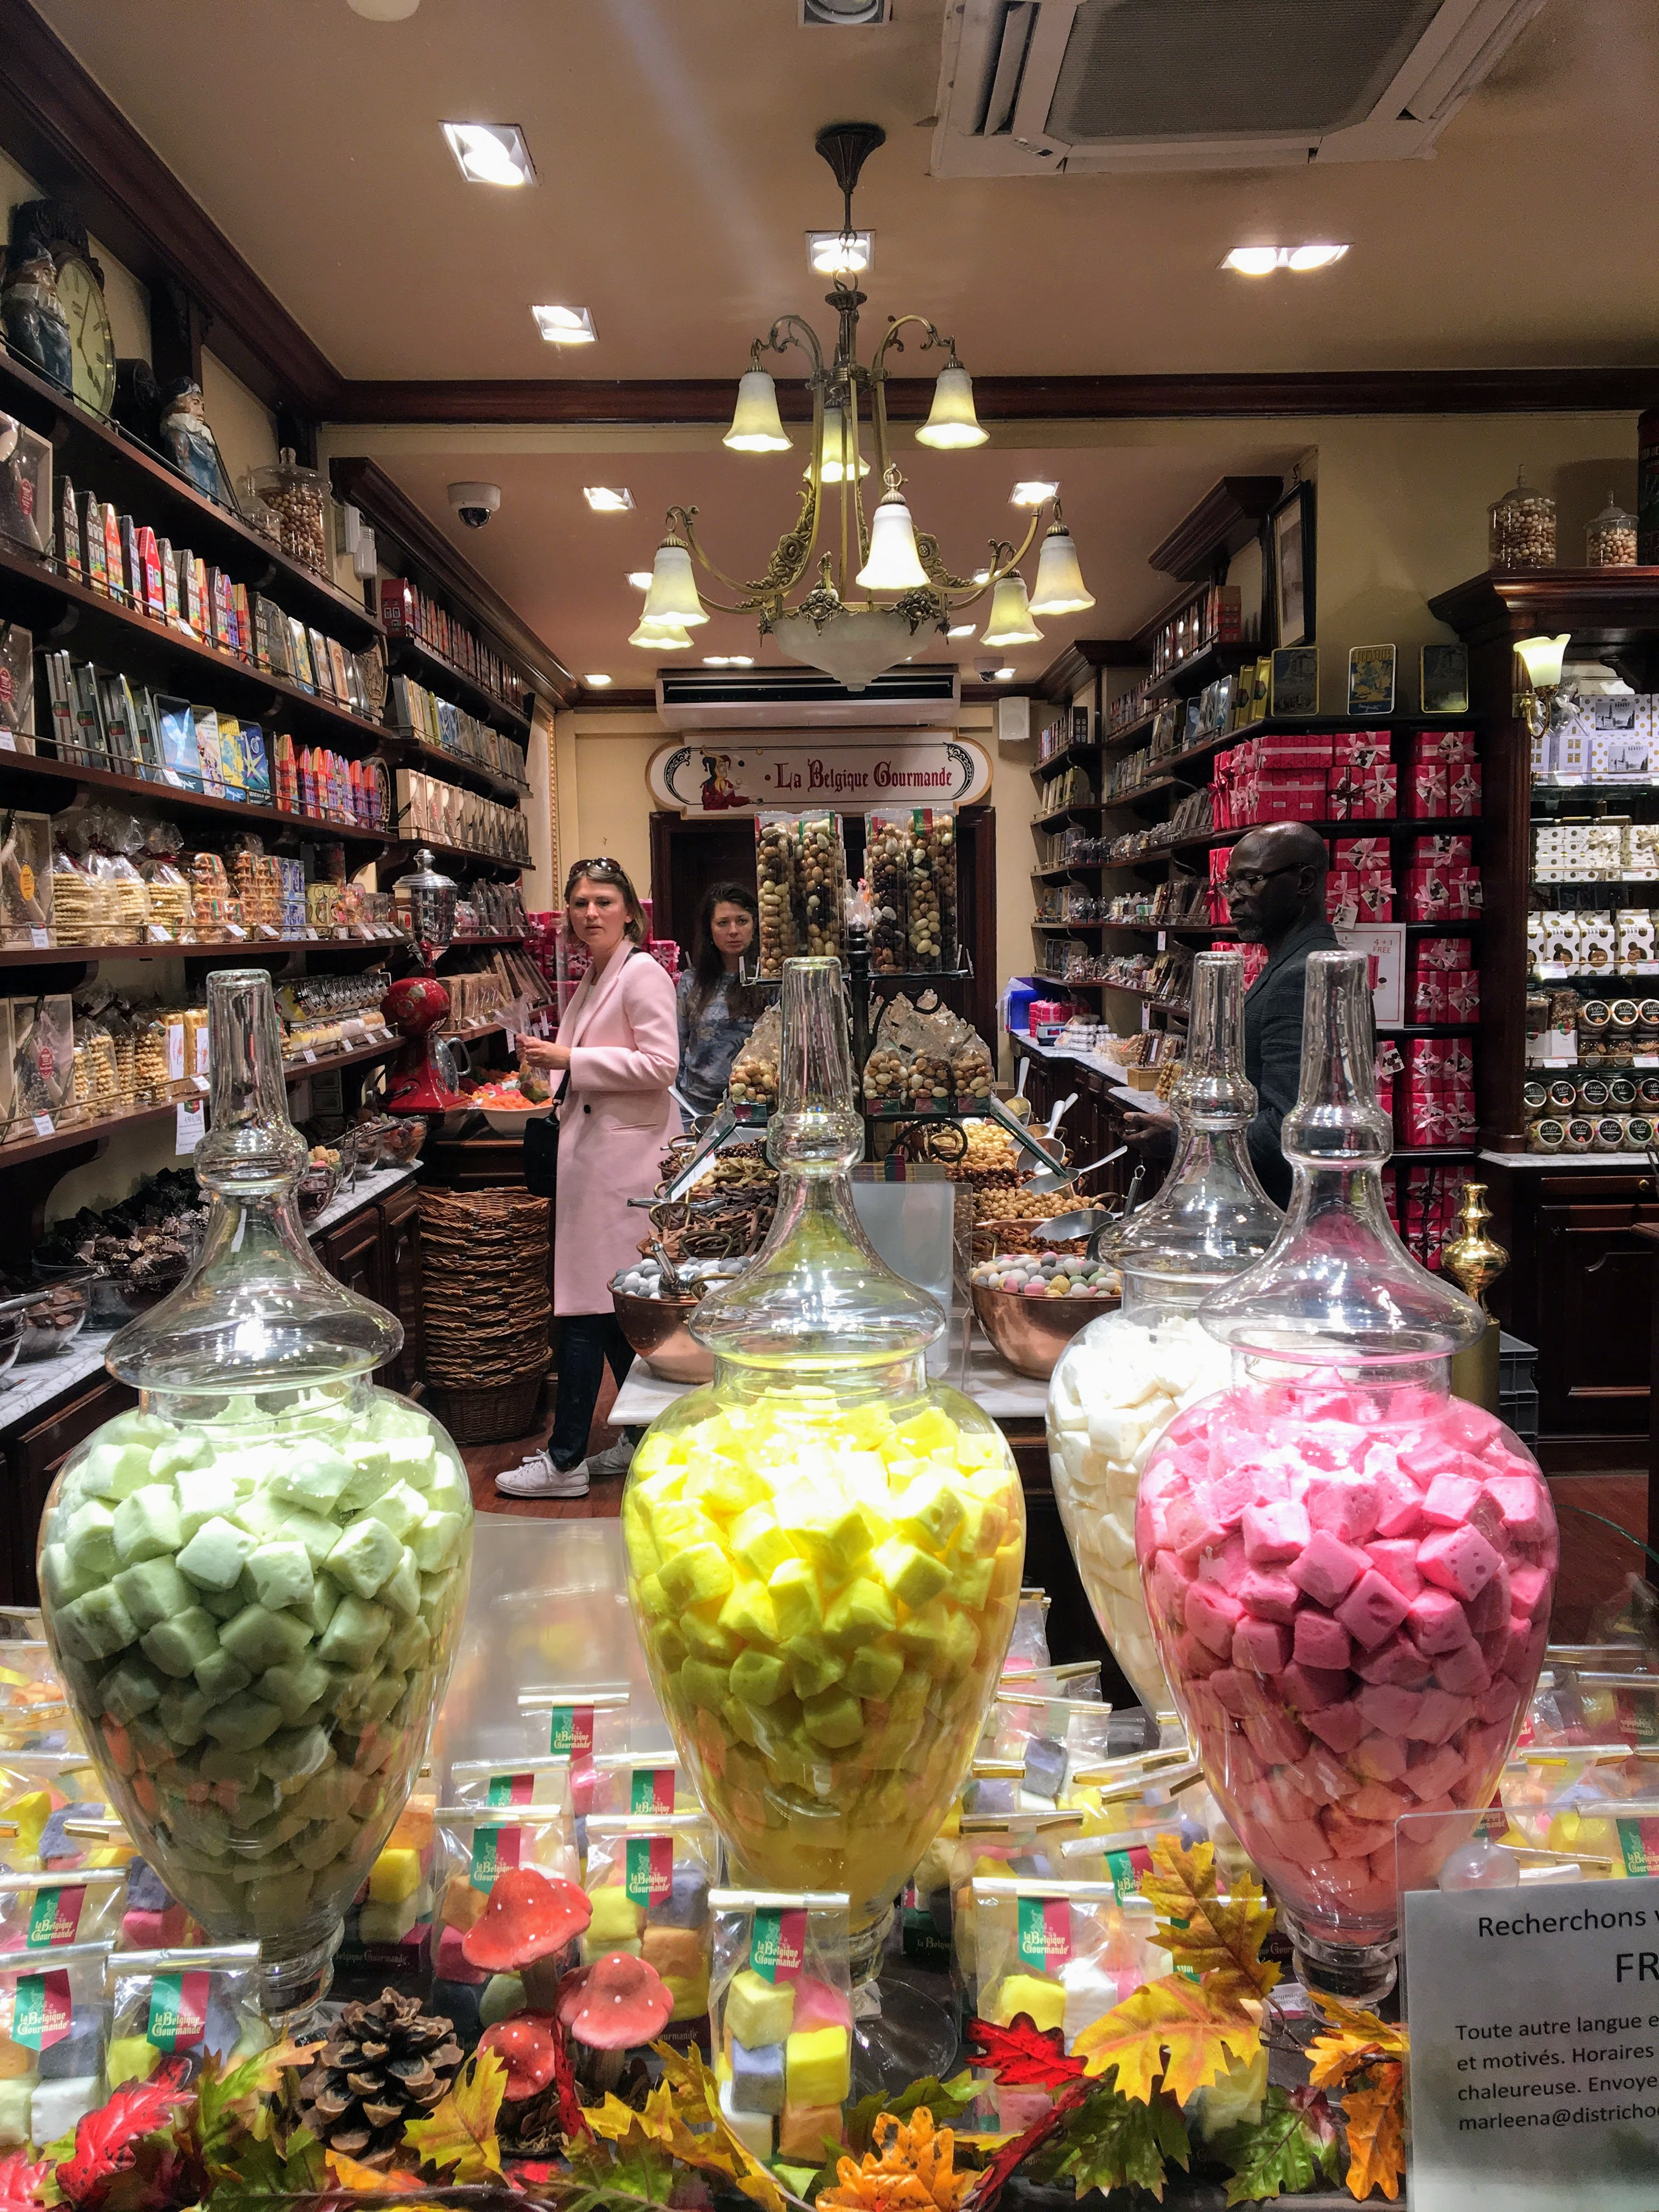 Candies and Belgian chocolate in a storefront window in Brussels, Belgium